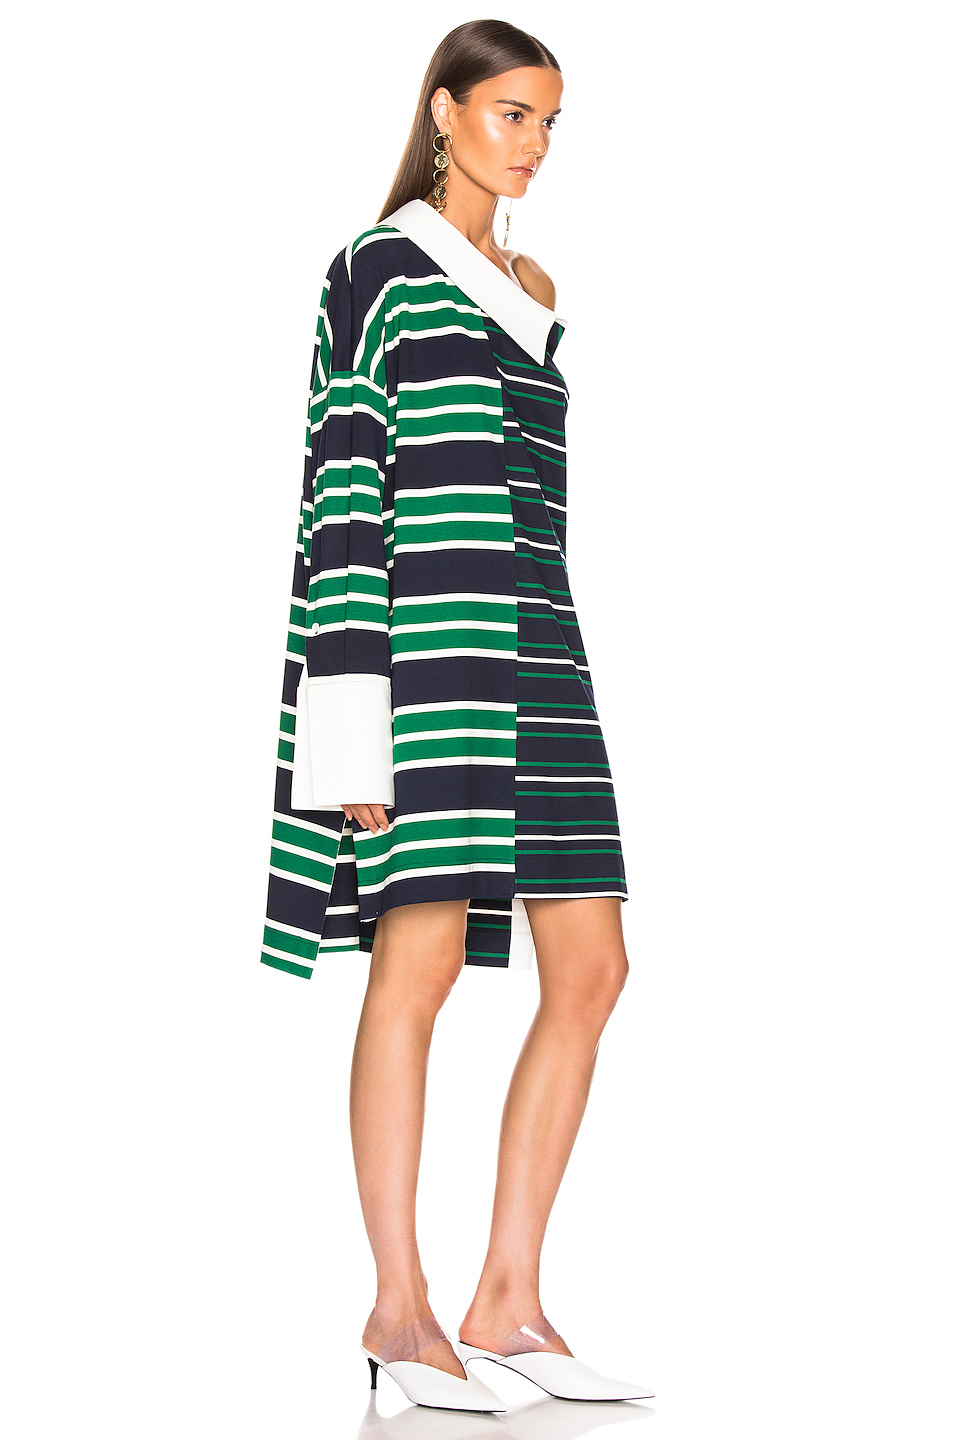 Monse Striped Shifted Rugby Dress